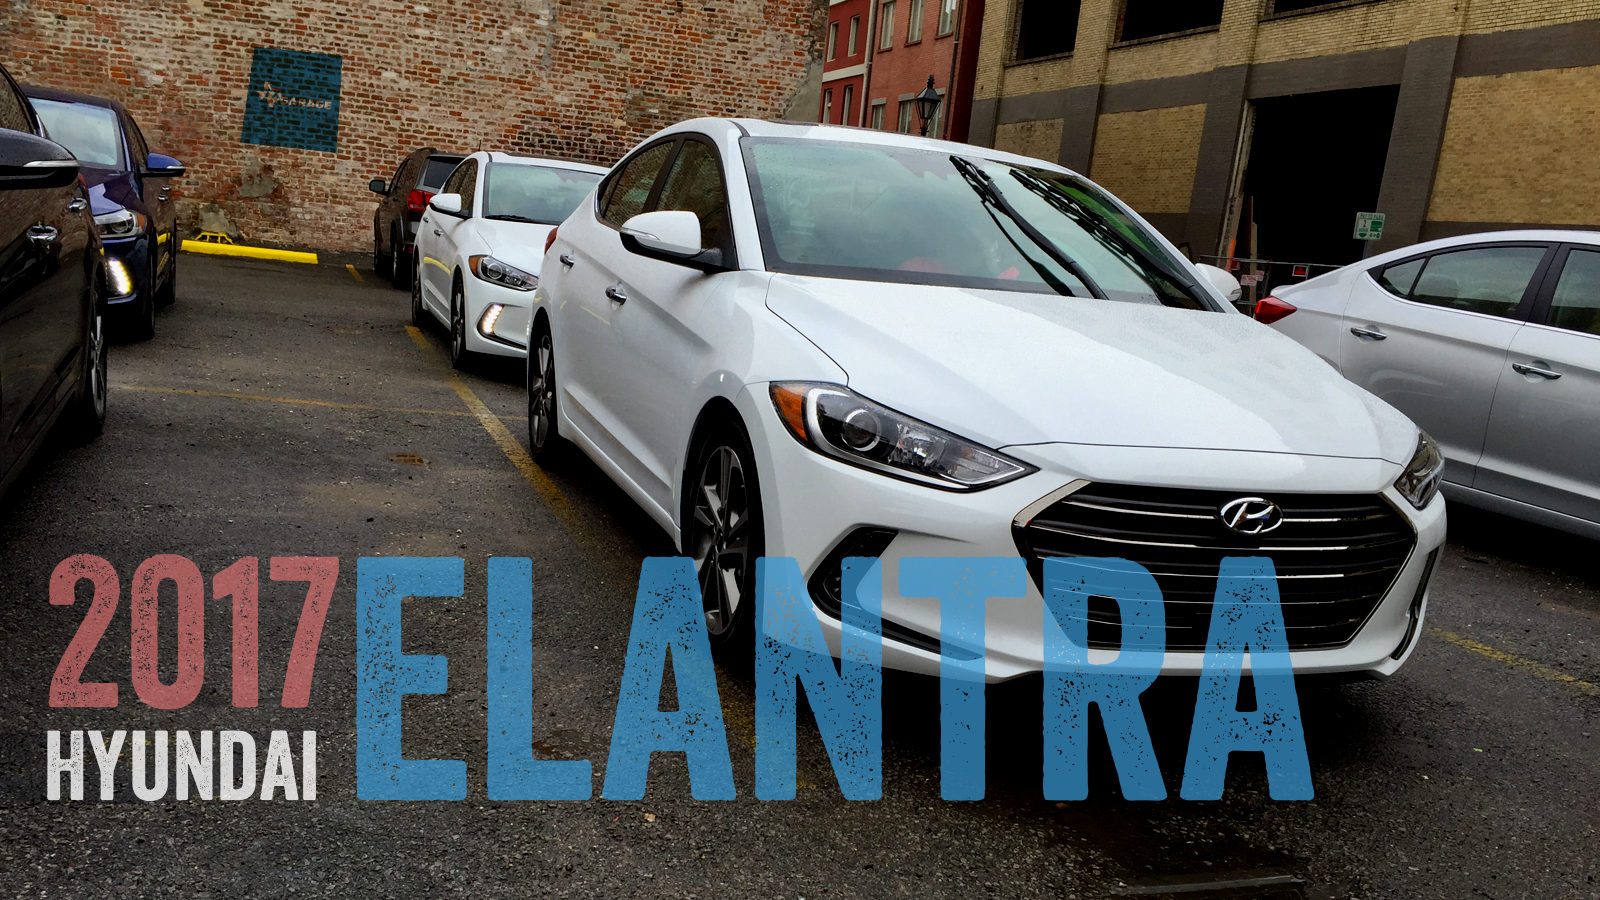 The 2017 Hyundai Elantra in New Orleans - by txGarage